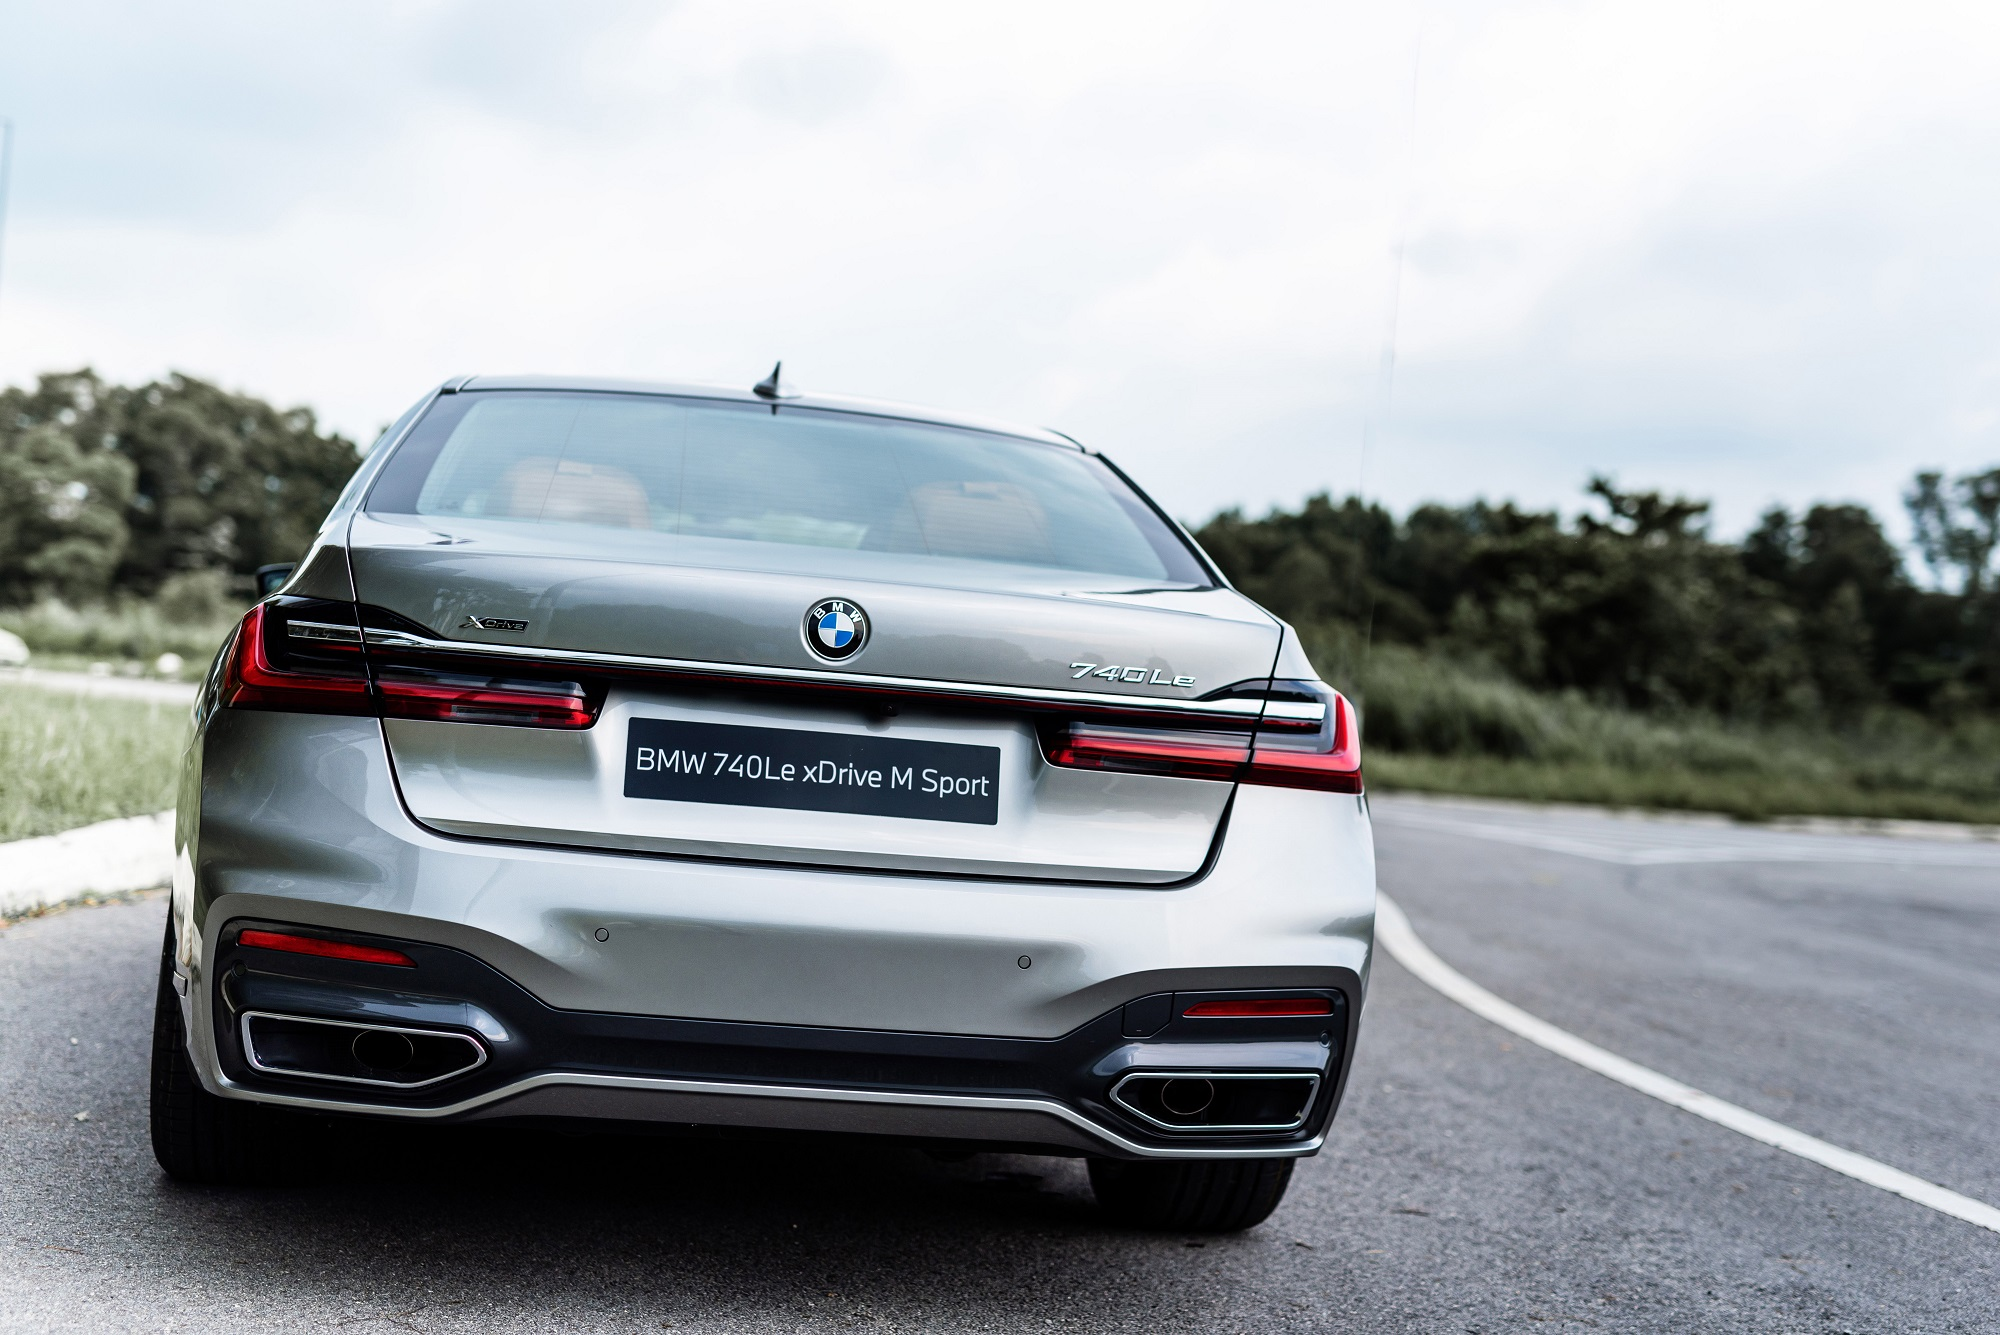 2021 BMW 740Le xDrive M-Sport : The sporty limousine or limousine with some sportiness?